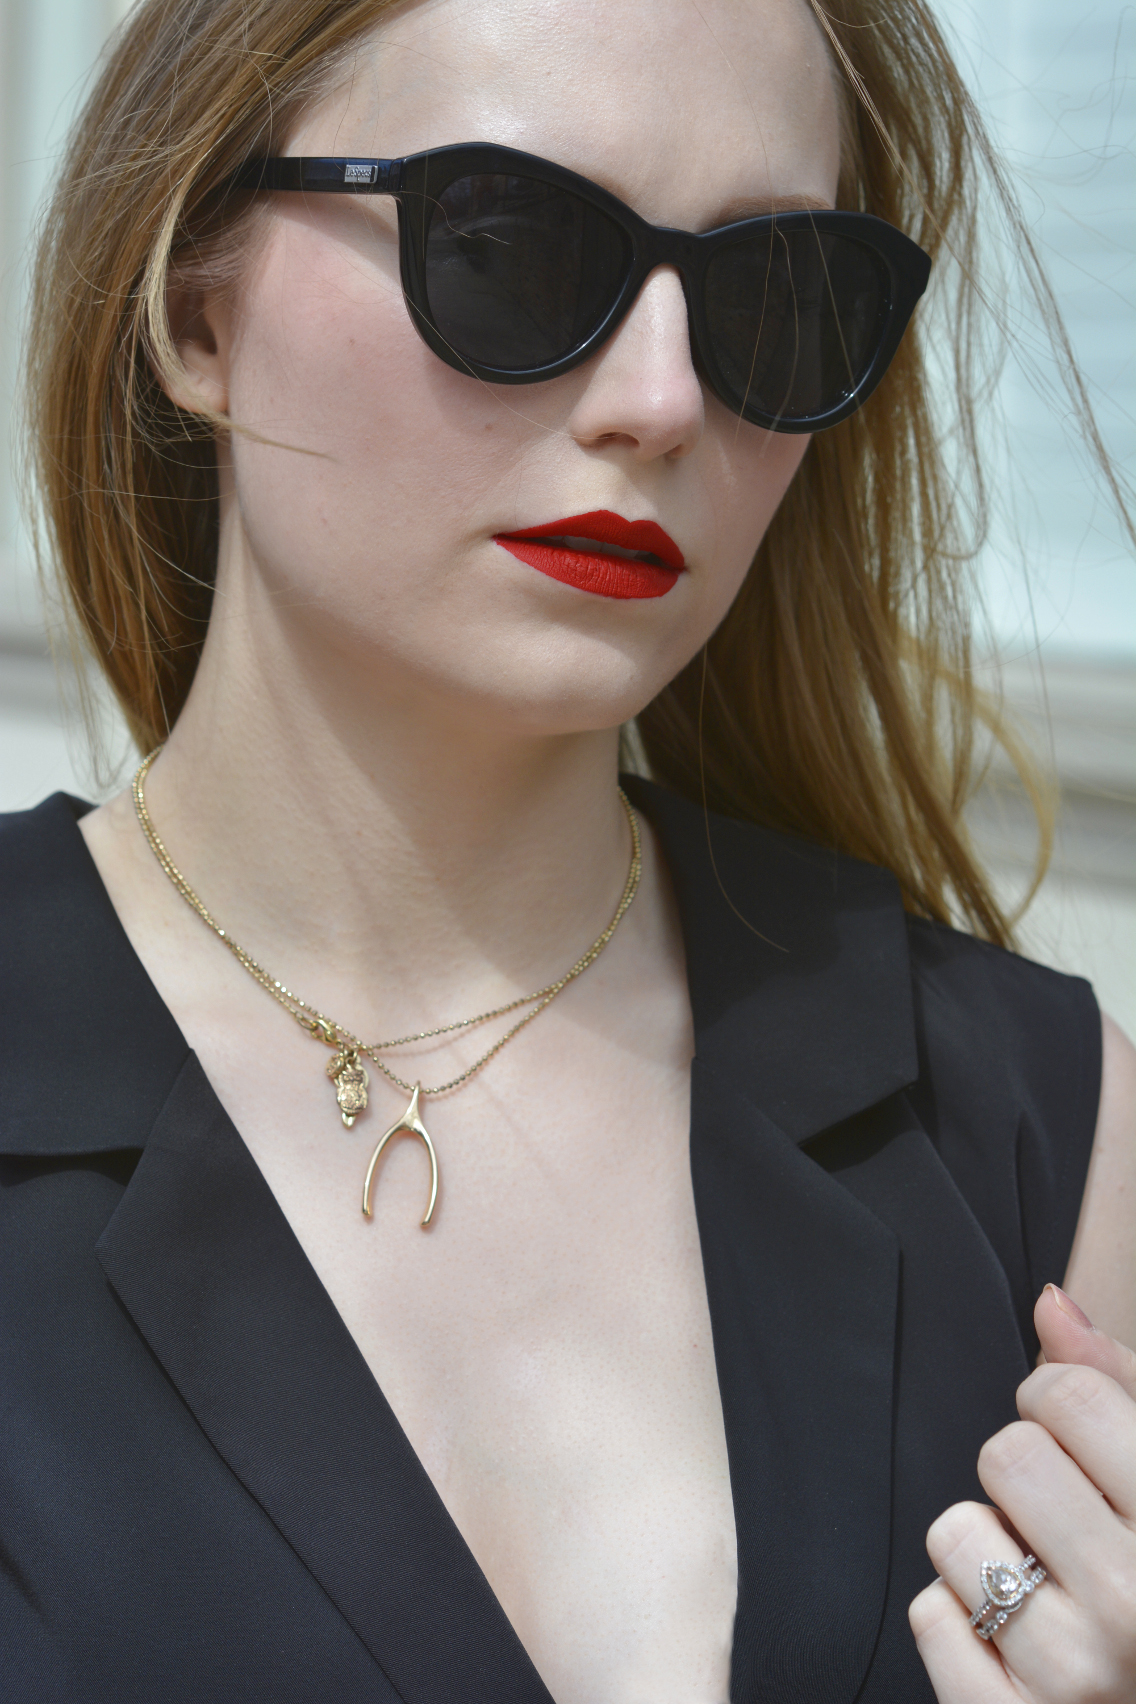 Black Jumpsuit with Red Lips